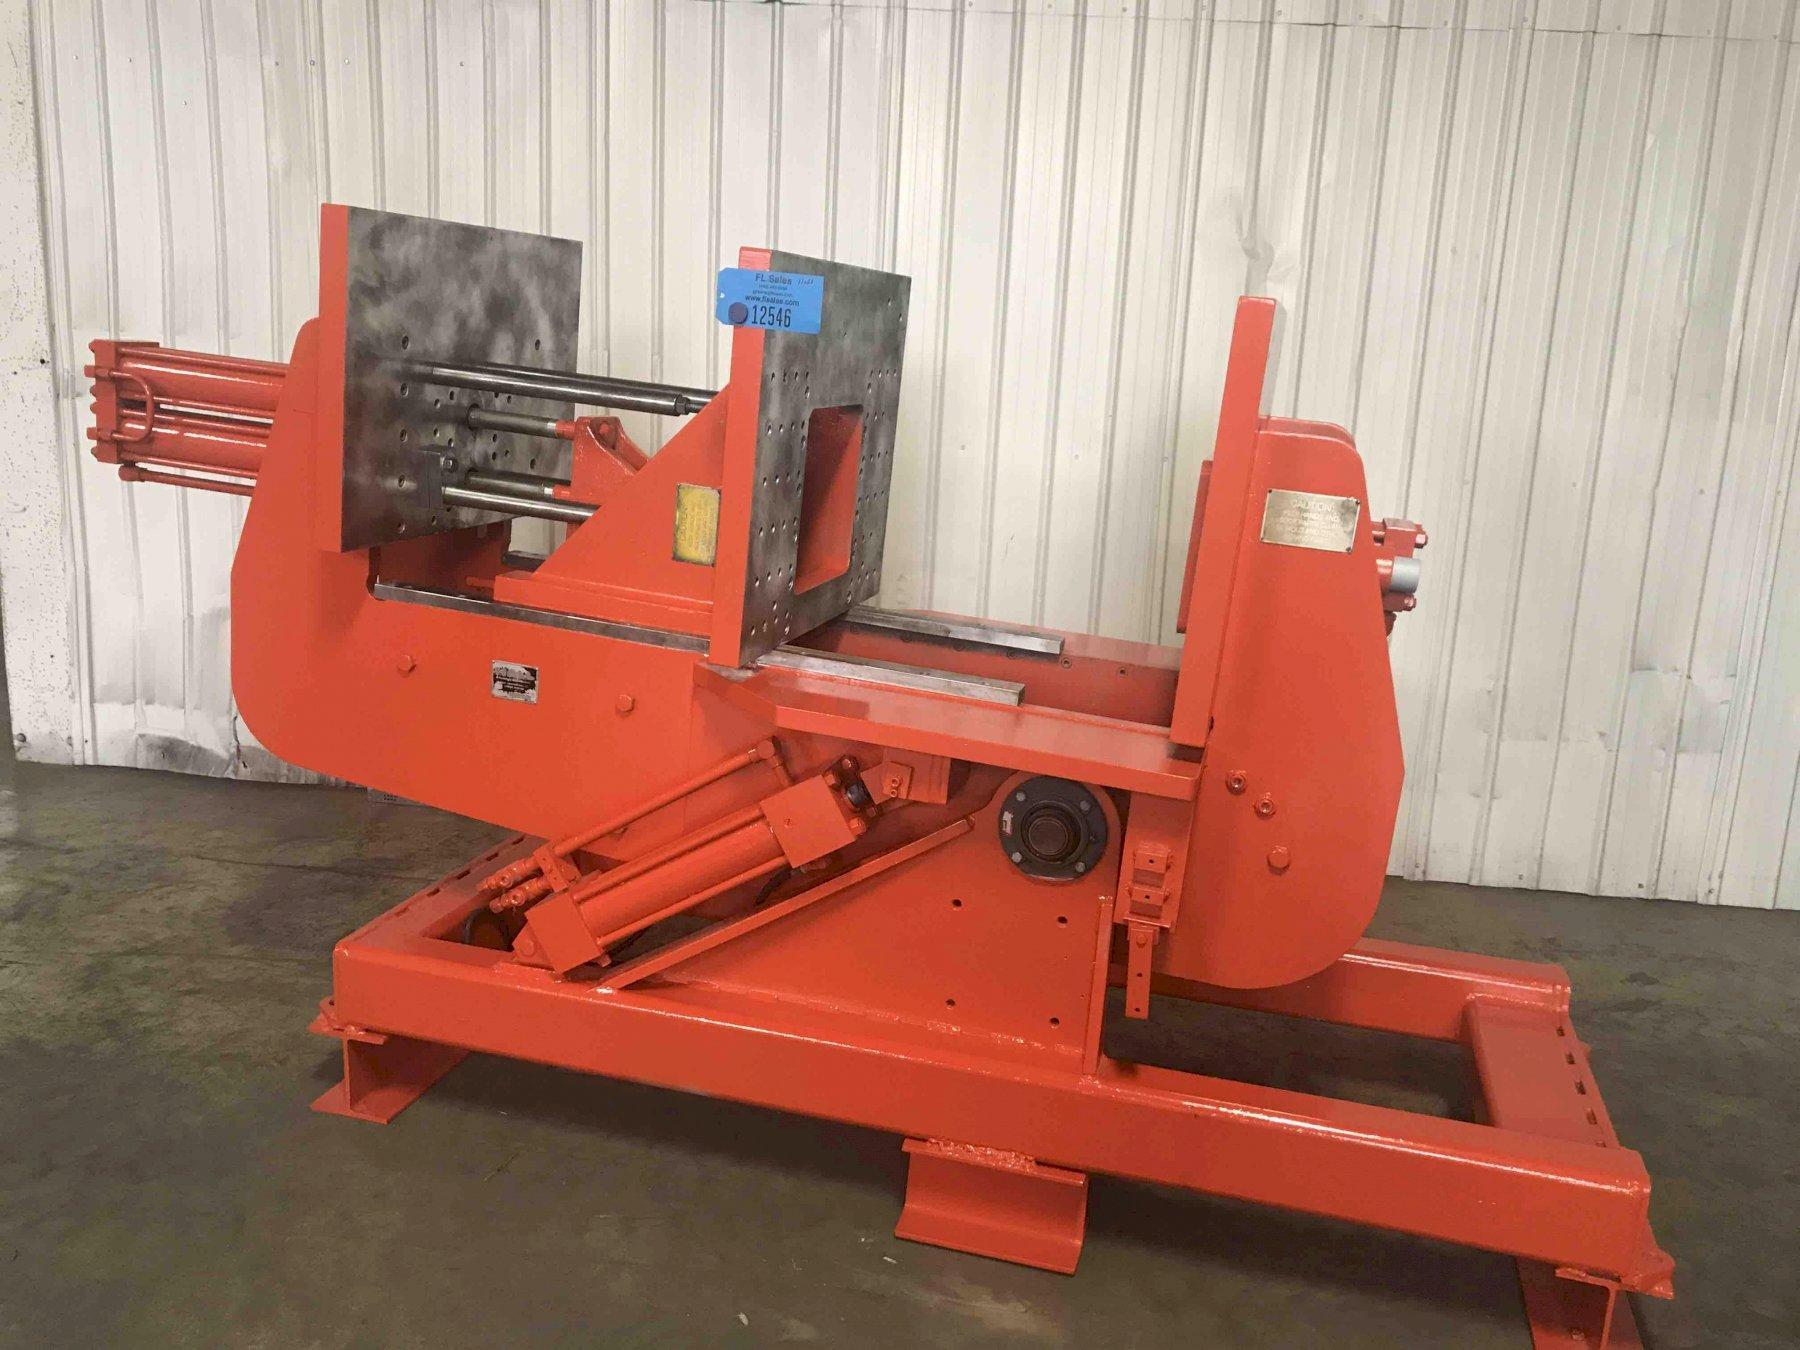 """Hall model hm2 permanent molding machine s/n 209897, twin cylinder type, 24"""" x 30"""" platen, offered cleaned, painted and checked out"""